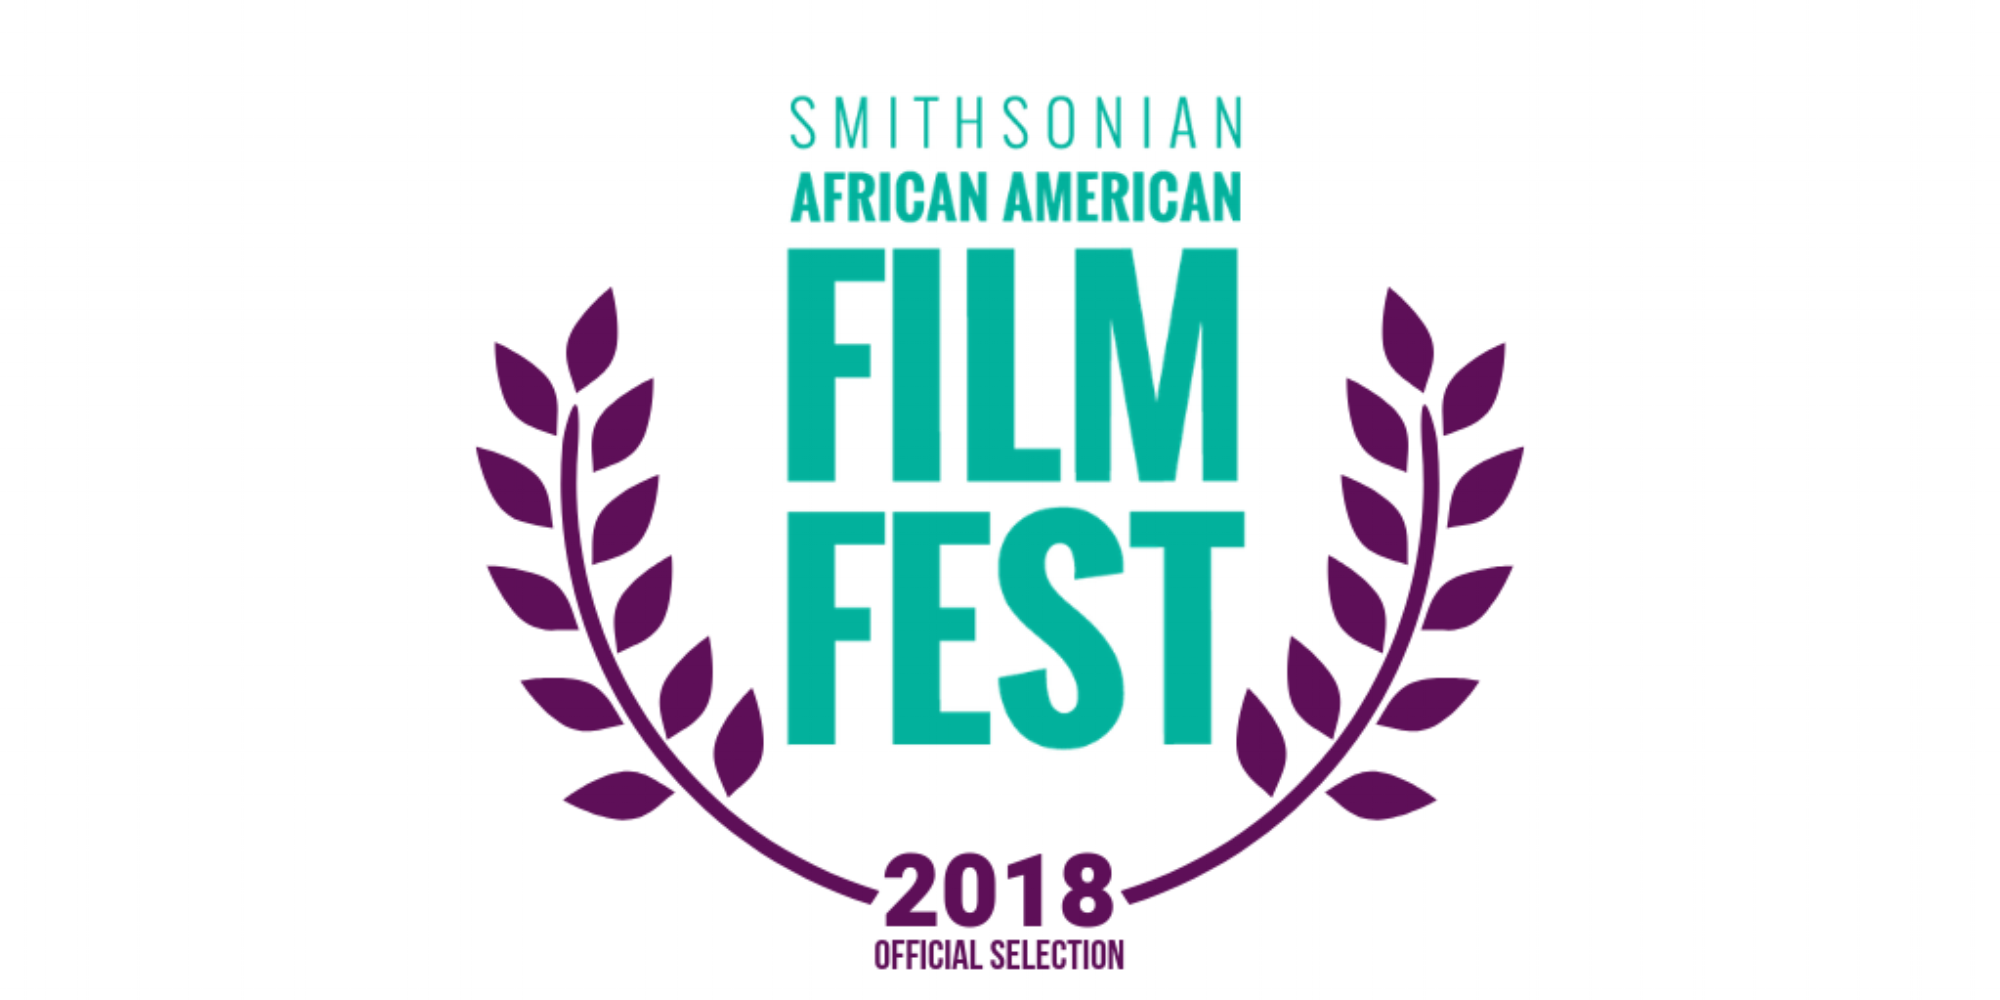 Smithsonian African American Film Festival.png